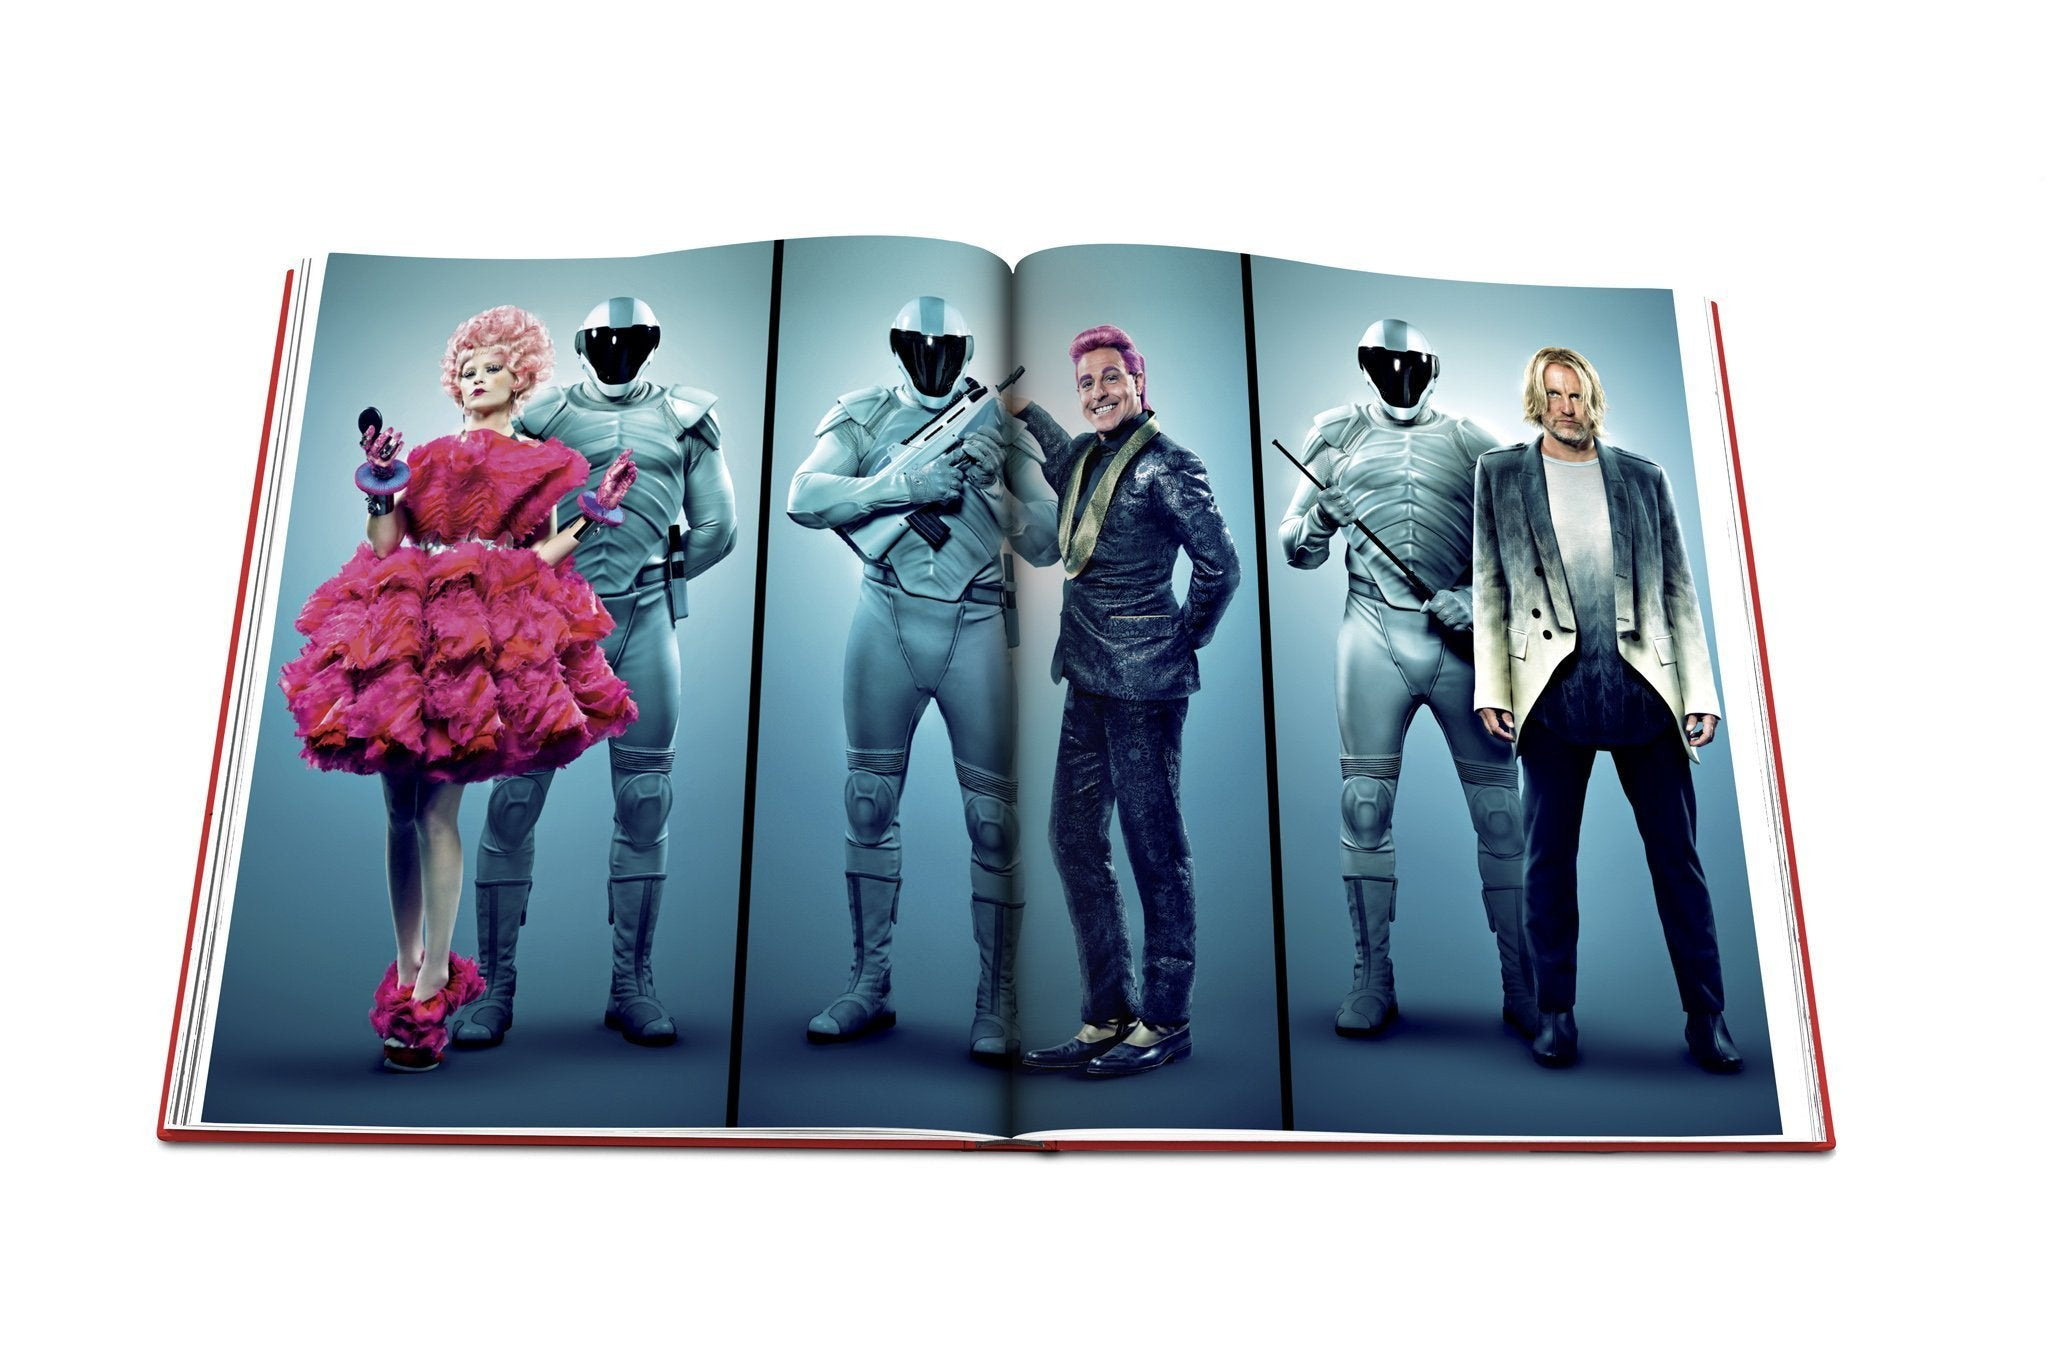 Tim Palen: Photographs from The Hunger Games (Ultimate Edition) - Assouline